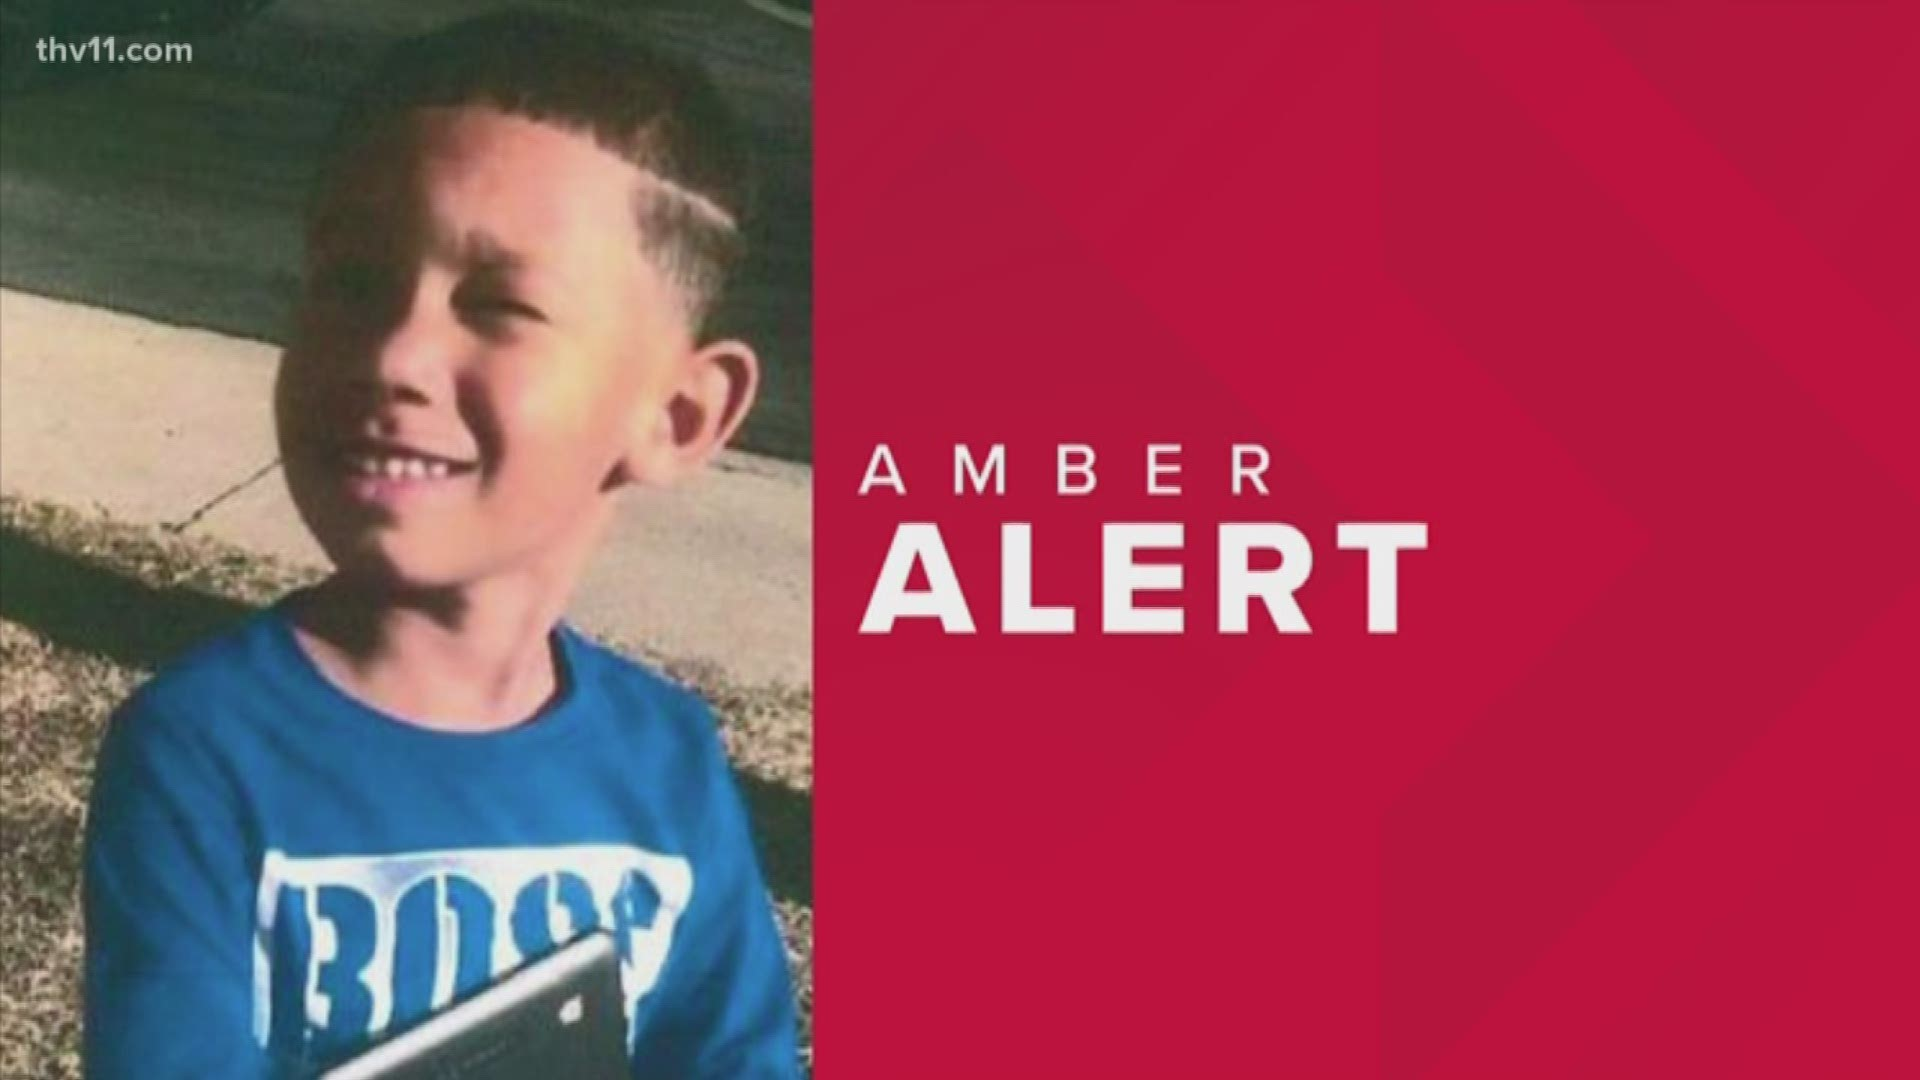 Amber Alert Arkansas Police Looking For Missing 6 Year Old Boy Thv11 Com